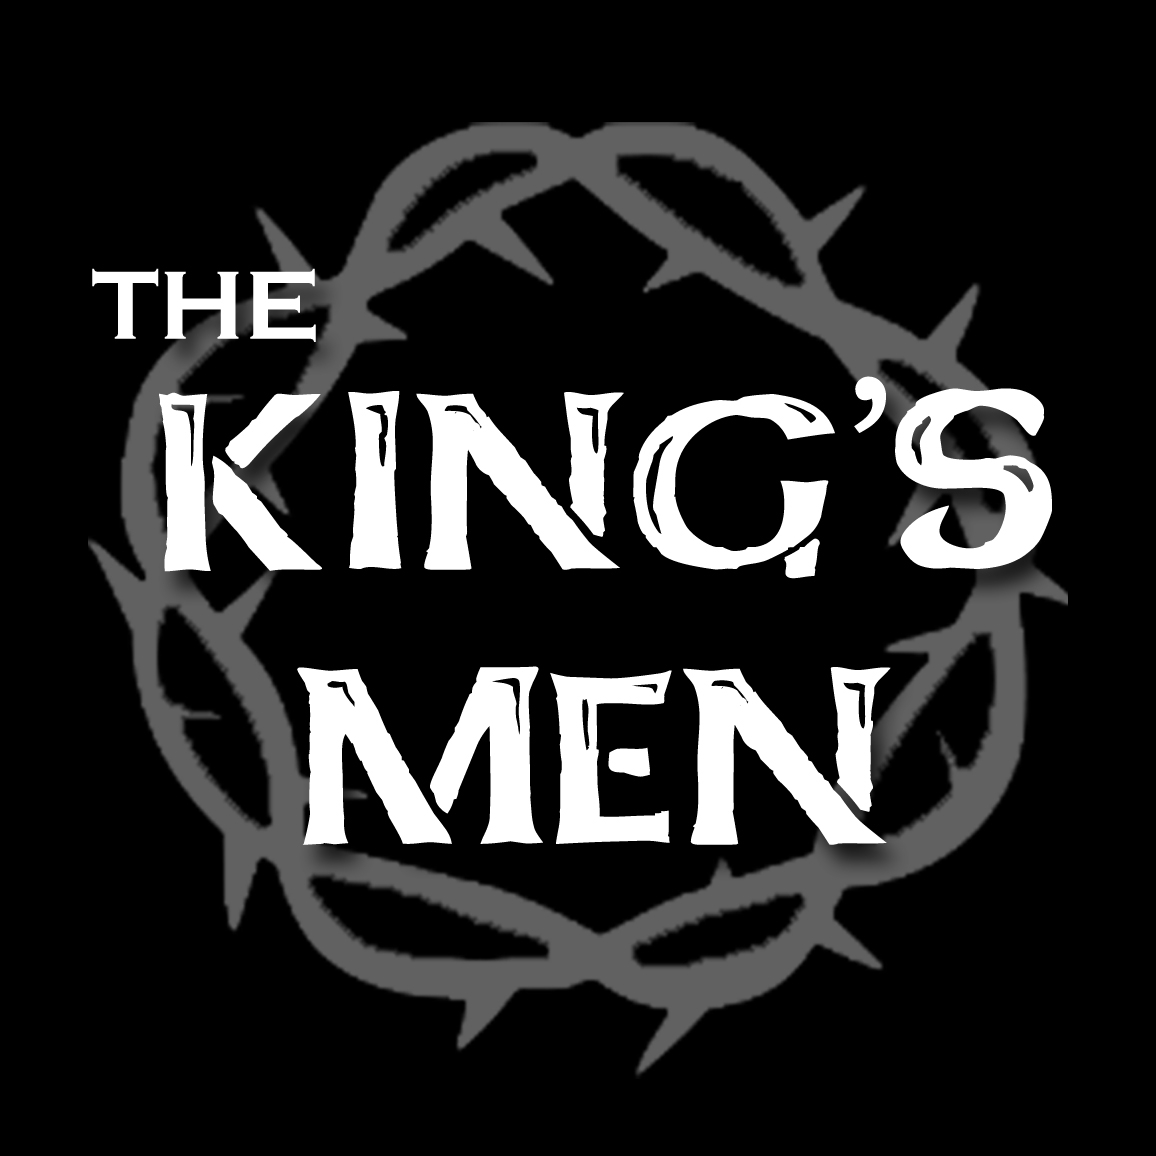 king christian single men Boundless is a community for christian young adults who want to grow up, own their faith, date with purpose, and prepare for marriage and family.